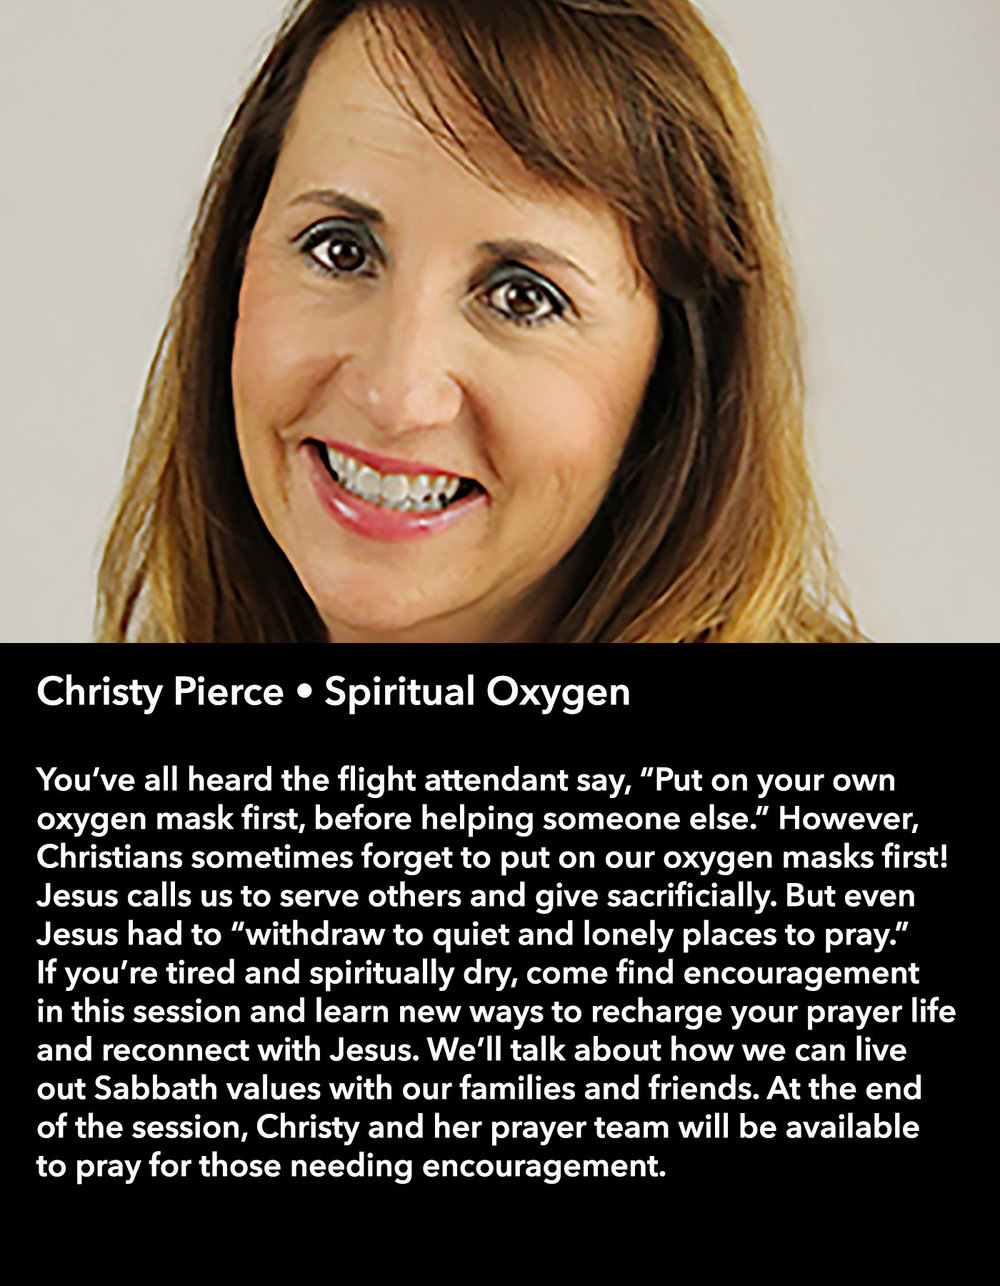 Christy Pierce • Spiritual Oxygen • Saturday Morning, March 18 • 10:30 – 11:45 am